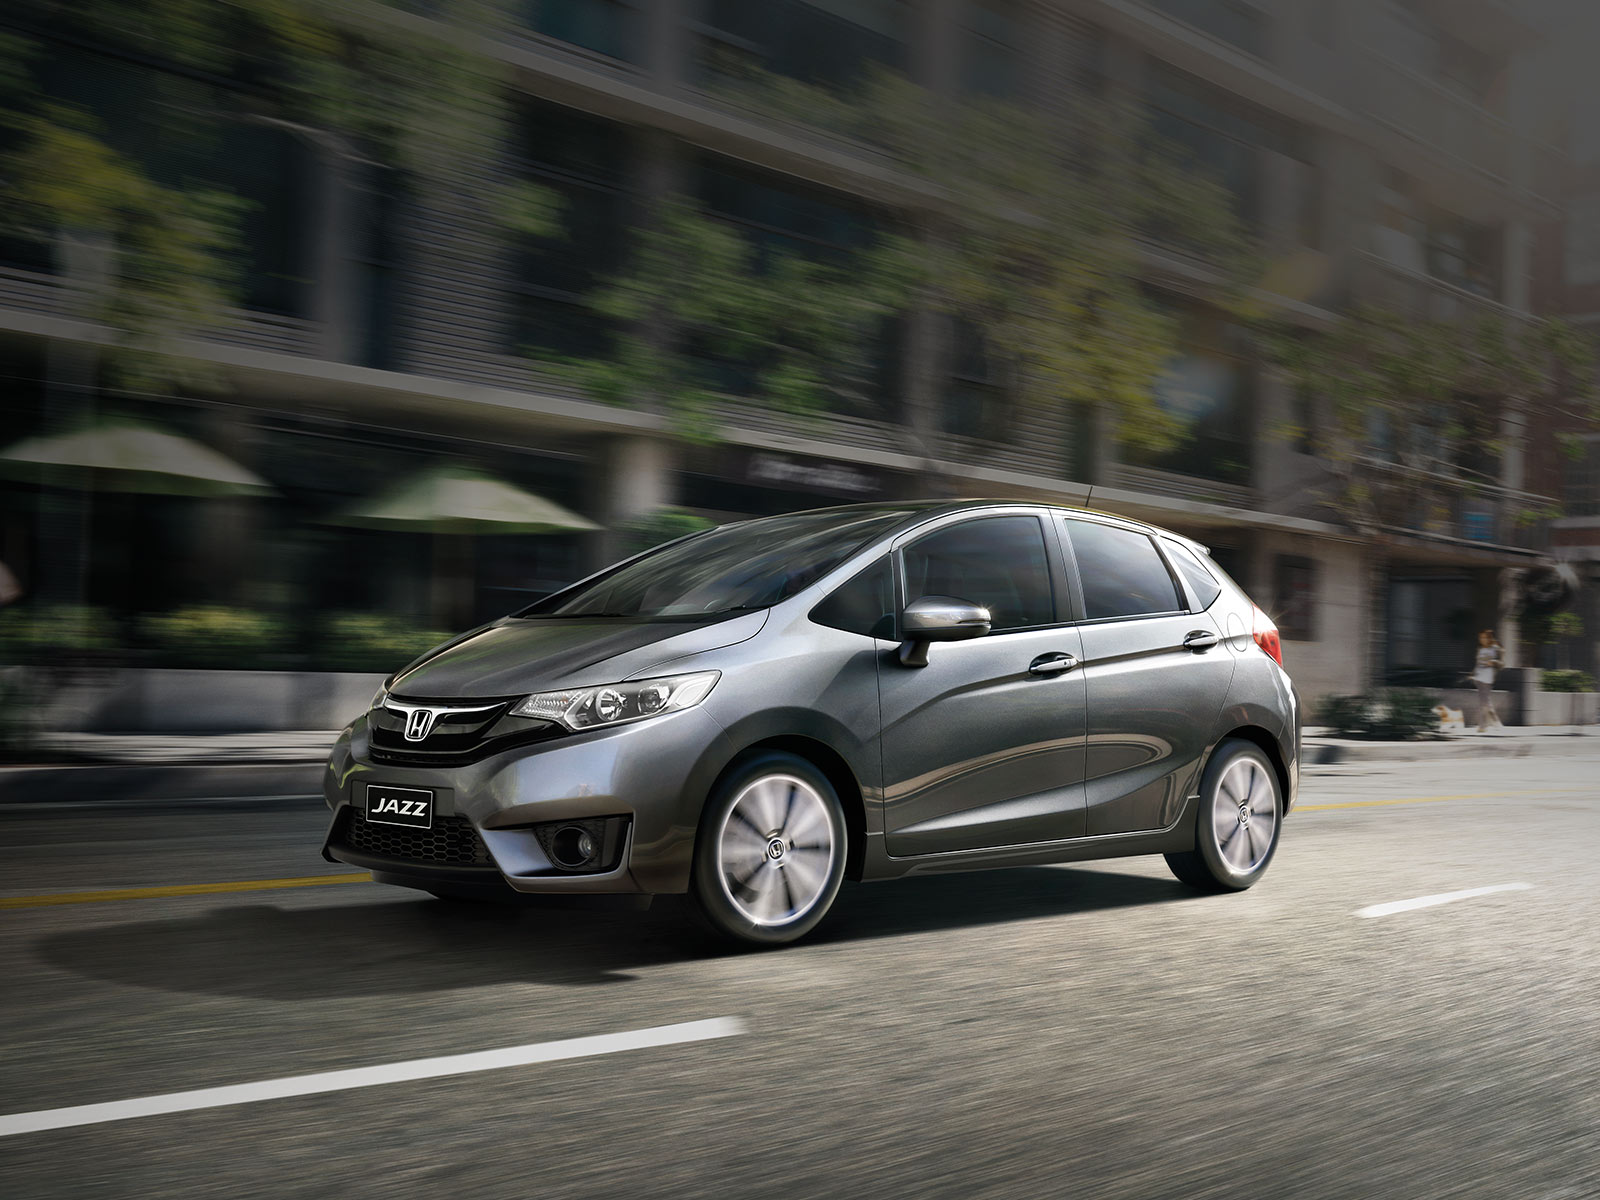 new honda jazz launching in march 2015 shifting gears. Black Bedroom Furniture Sets. Home Design Ideas